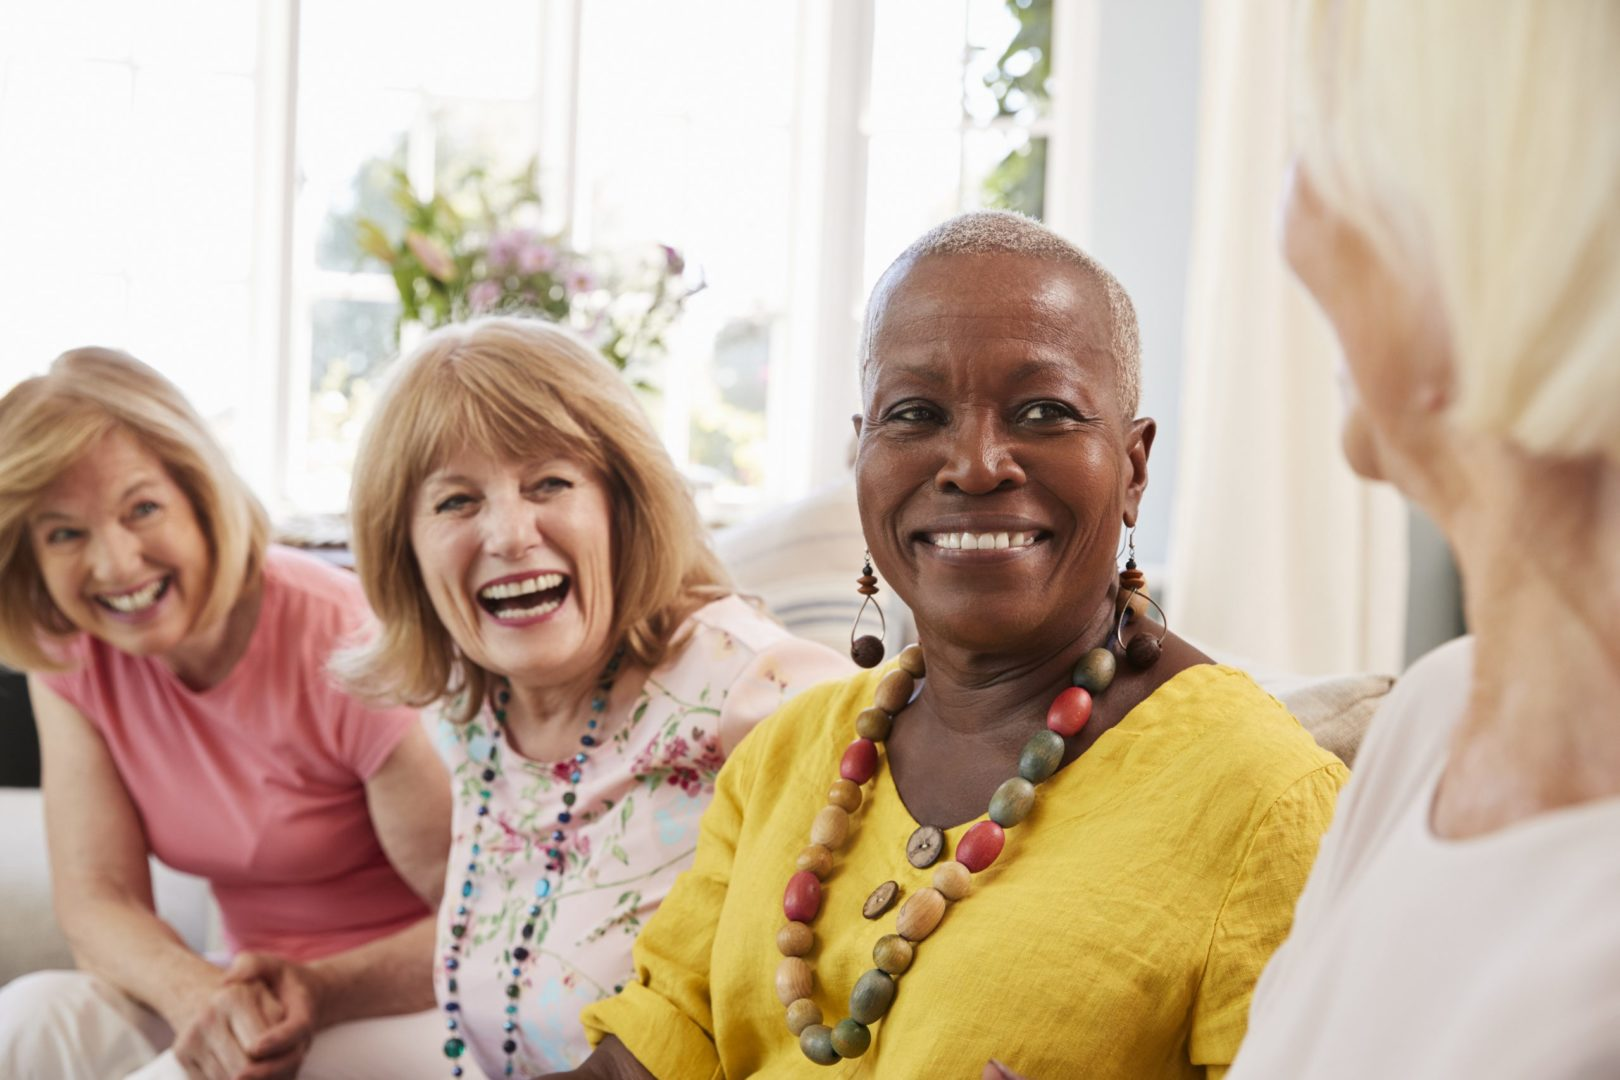 Four senior female friends, connecting over a good story and laughing. From left to right - Caucasian woman with shoulder length blond hair, wearing a pink t-shirt and stone colored pants, big smile on her face. Caucasian woman with shoulder length light brown hair, laughing, wearing a flowery blouse and long beaded necklace. African American woman with short gray hair, wearing a yellow linen blouse and beaded earrings and necklace. Caucasian woman with bob length blond hair and light pink top.